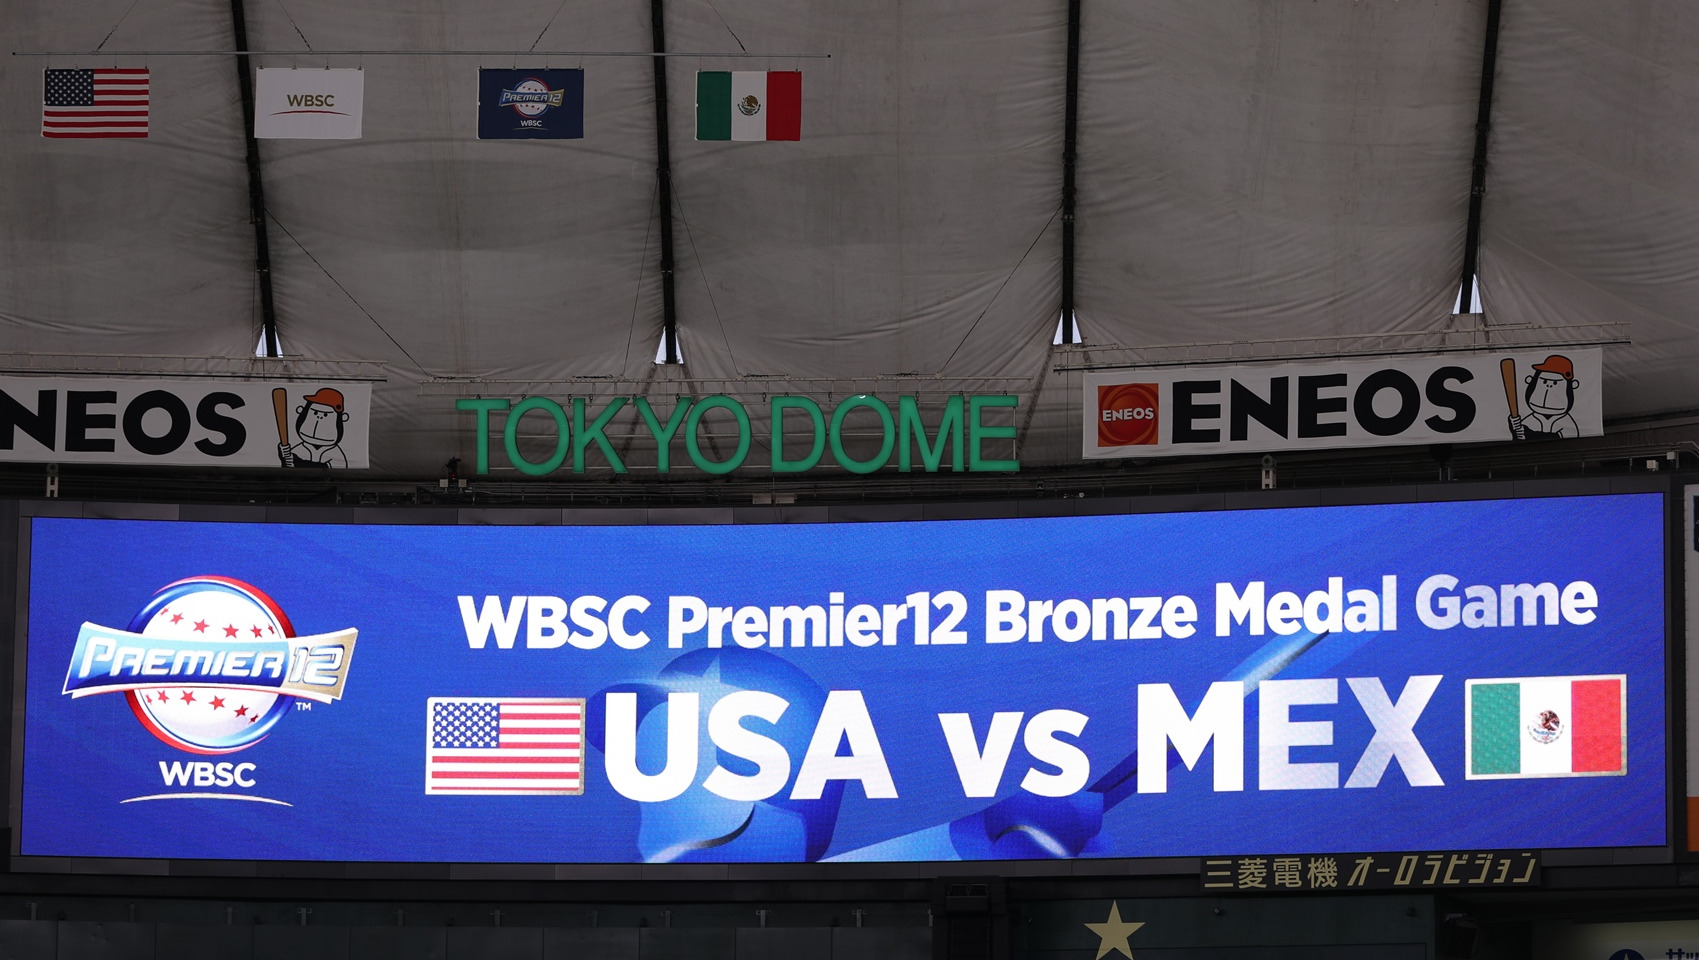 Mexico and USA meet in the bronze medal game, that is also a Tokyo 2020 Qualifier